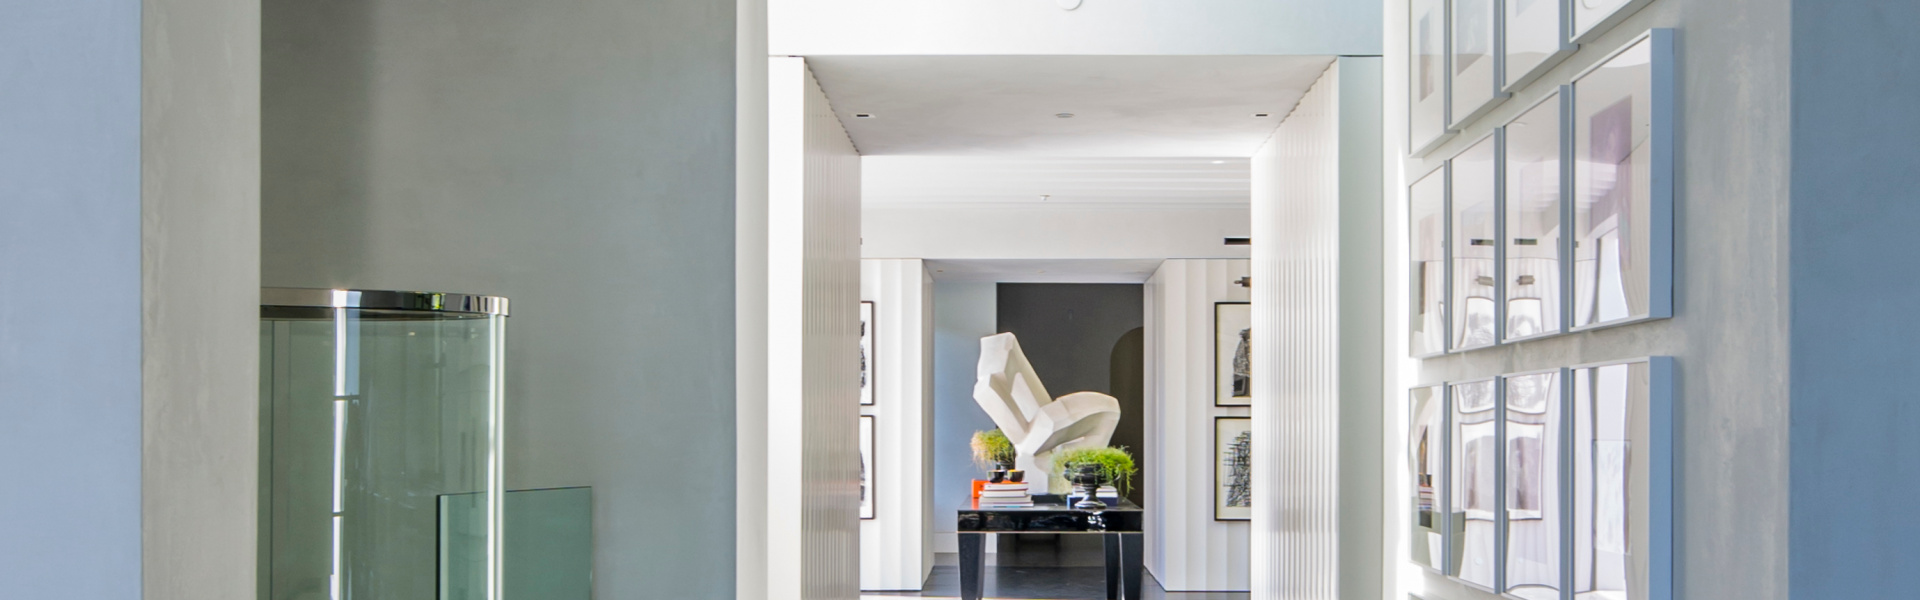 Smart home installation by KP Audio Video for Beverly Hills